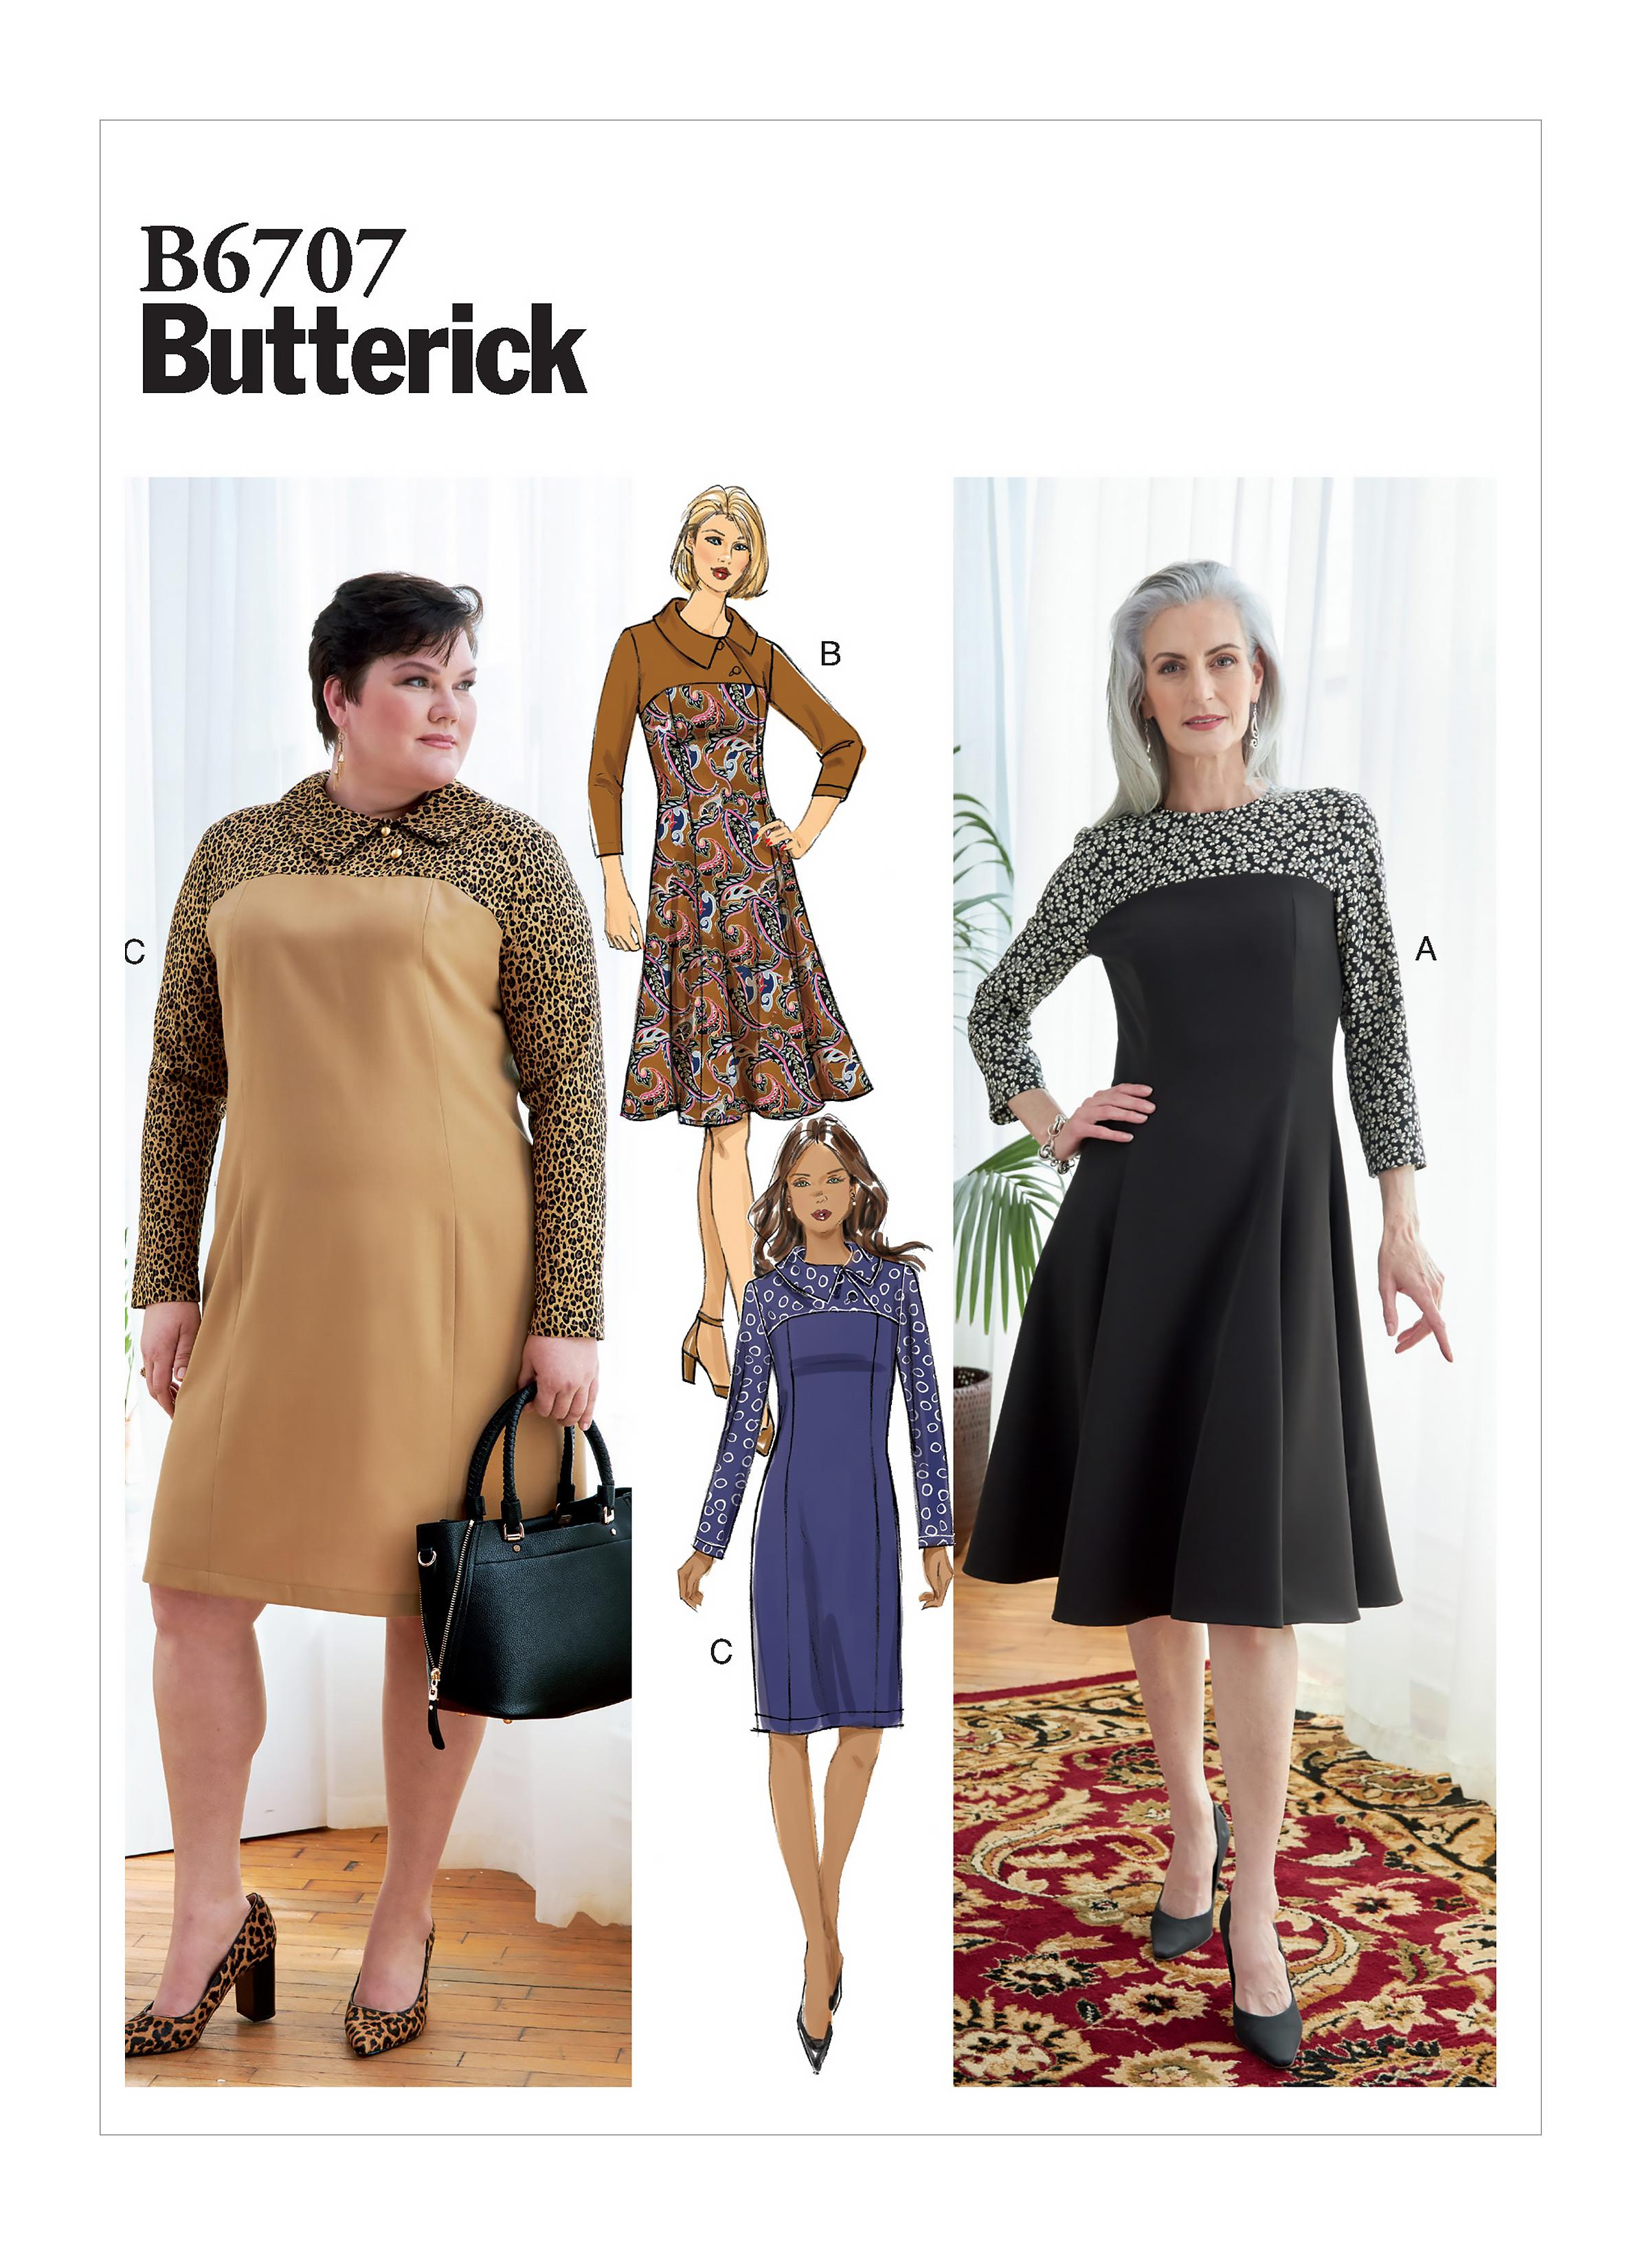 Butterick B6707 Misses'/Women's Dress